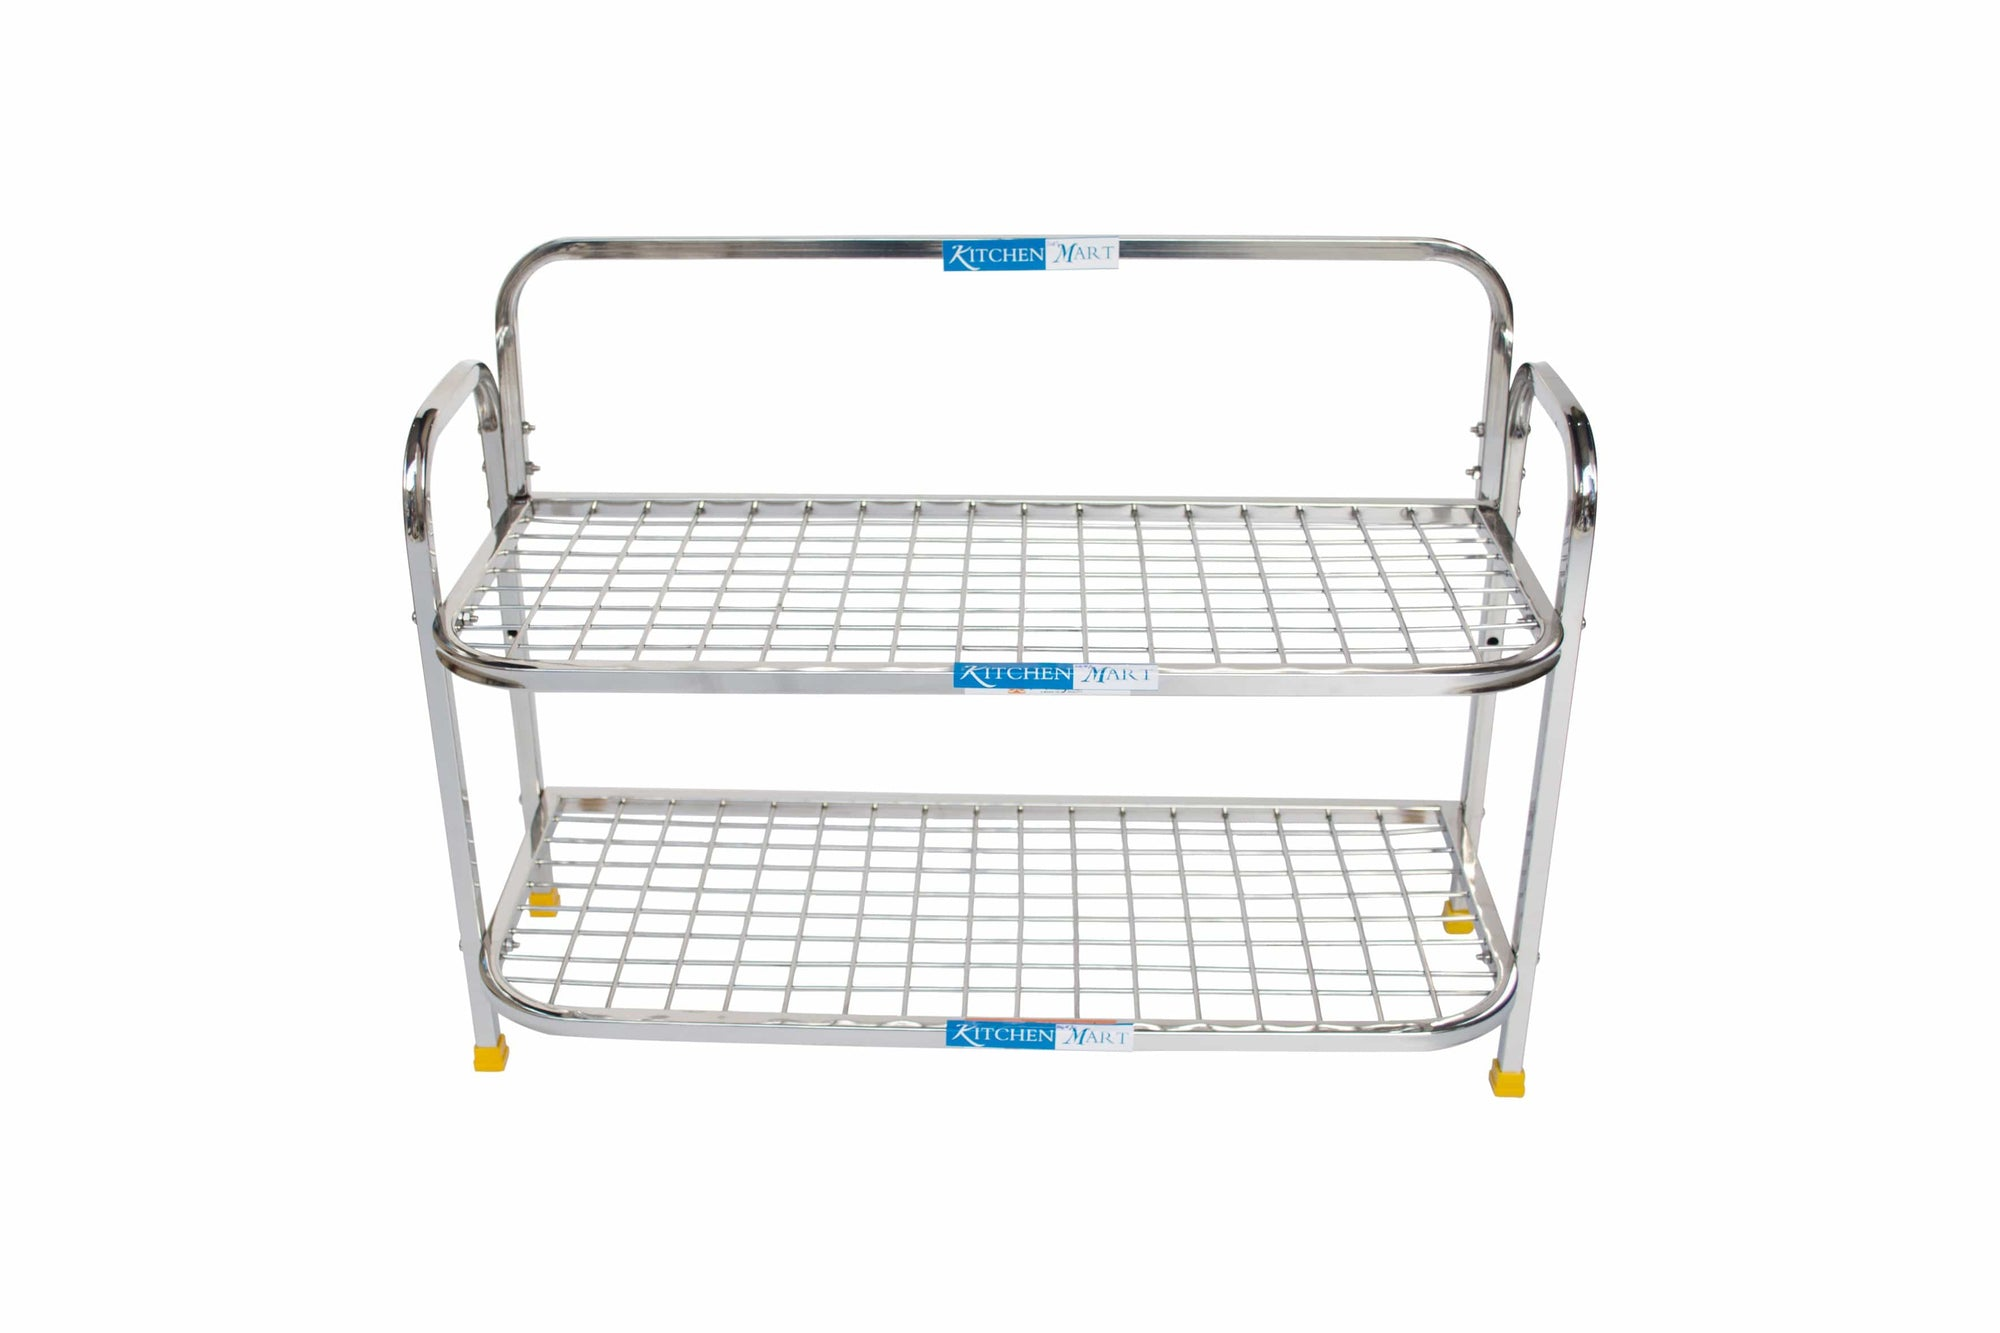 Kitchen Mart Stainless Steel shoe rack/ Kitchen Storage shelf rack (24x2) - KITCHEN MART